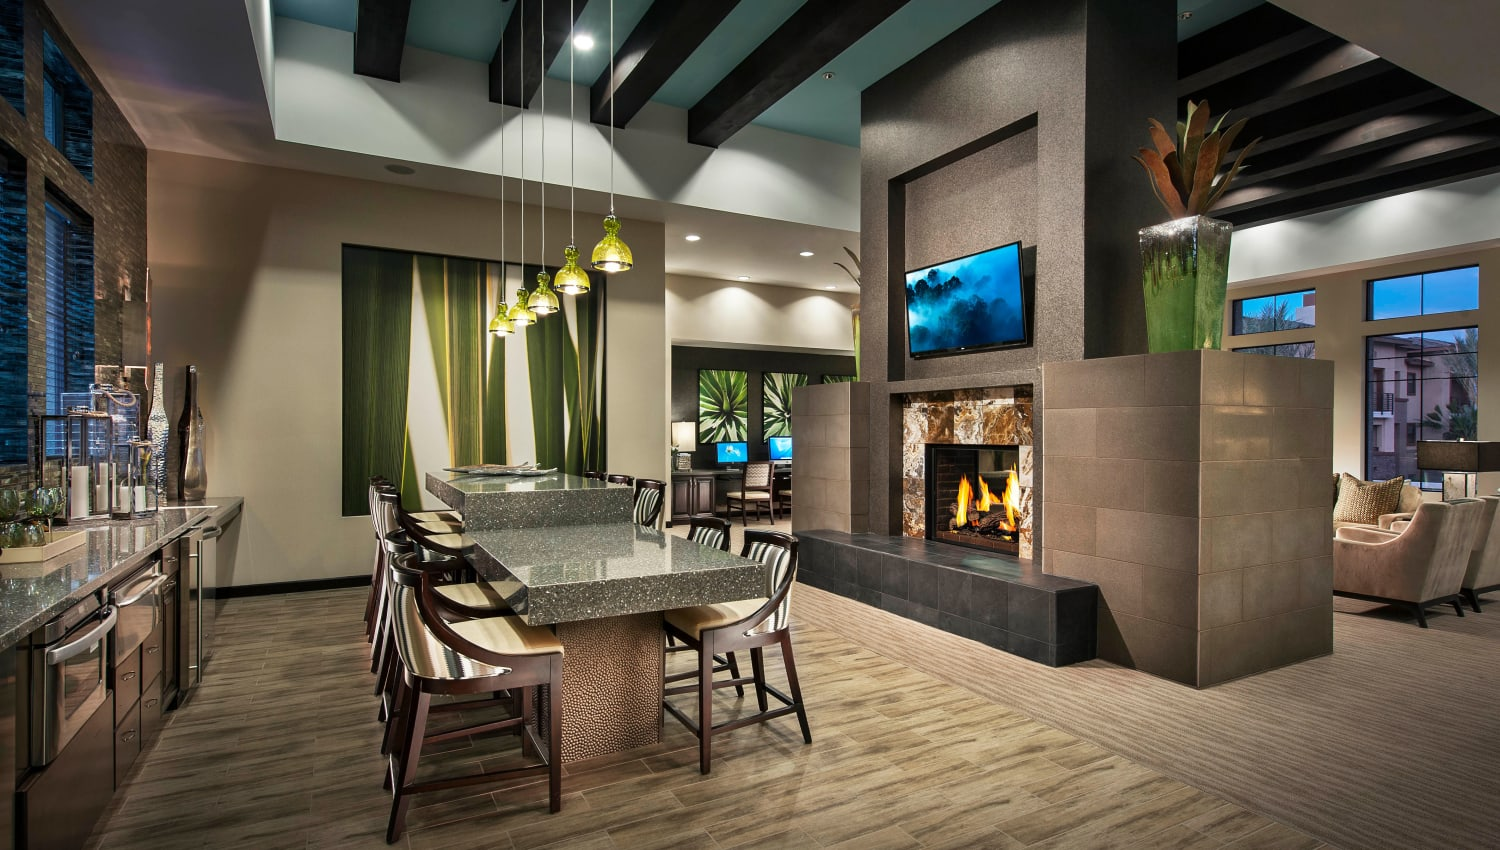 Plenty of room to get together with friends and neighbors in the clubhouse at Redstone at SanTan Village in Gilbert, Arizona